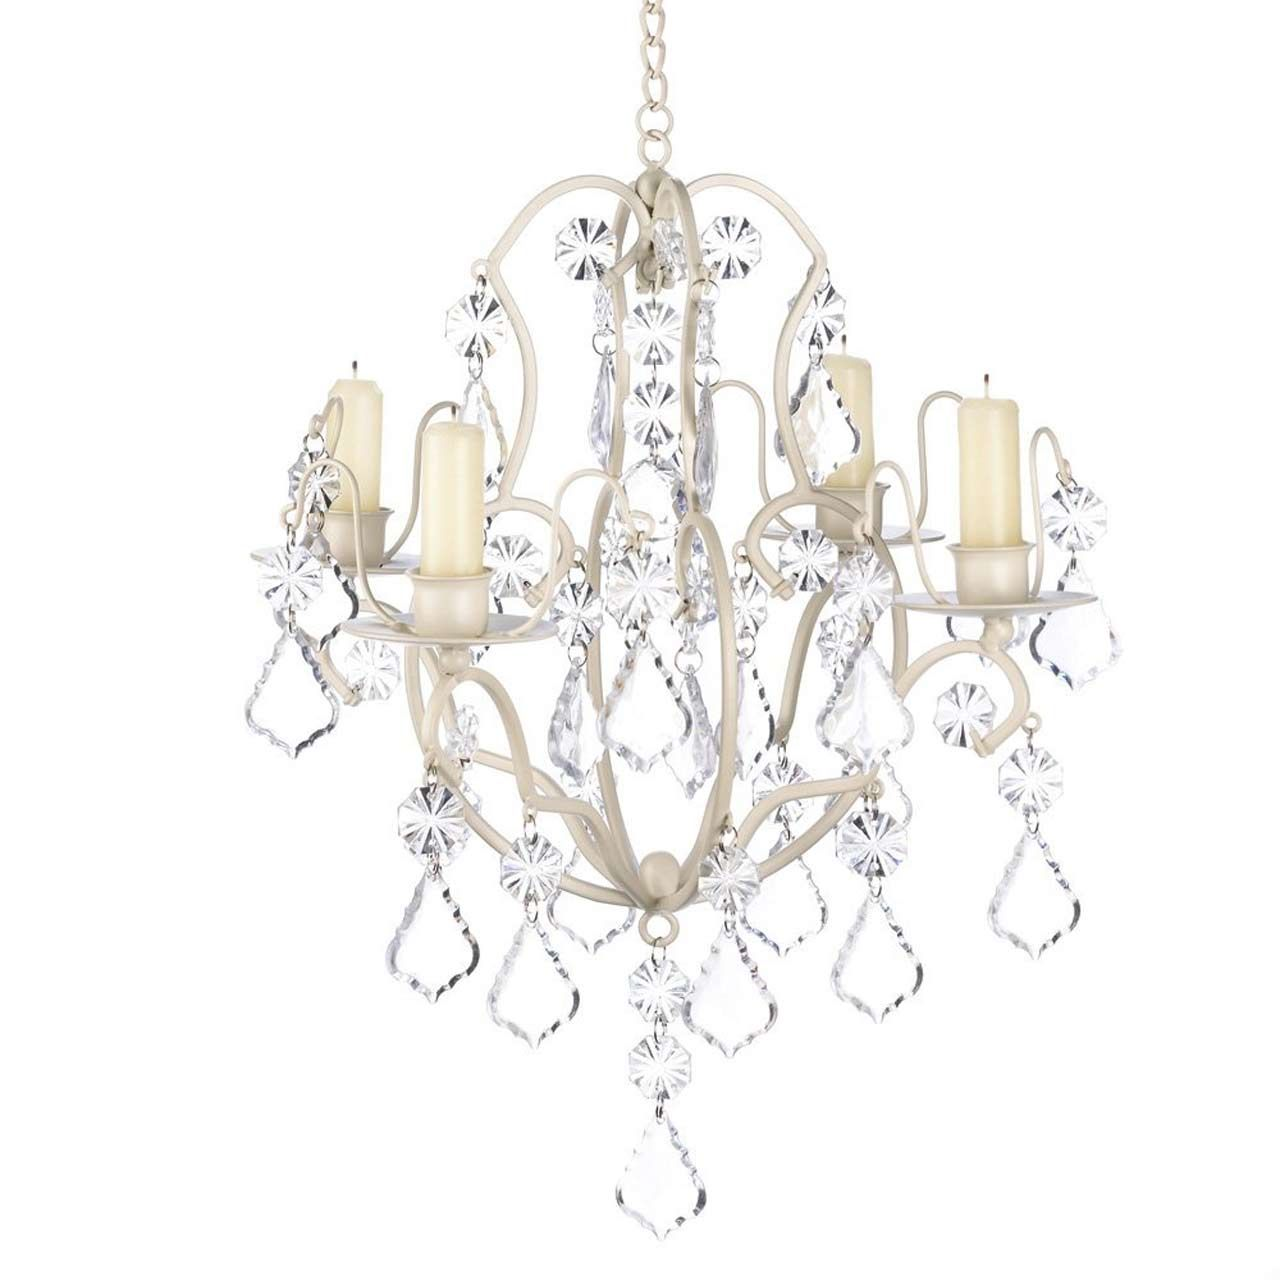 Hanging candle chandelier design httplookmyhomes hanging candle chandelier design httplookmyhomeshanging arubaitofo Choice Image